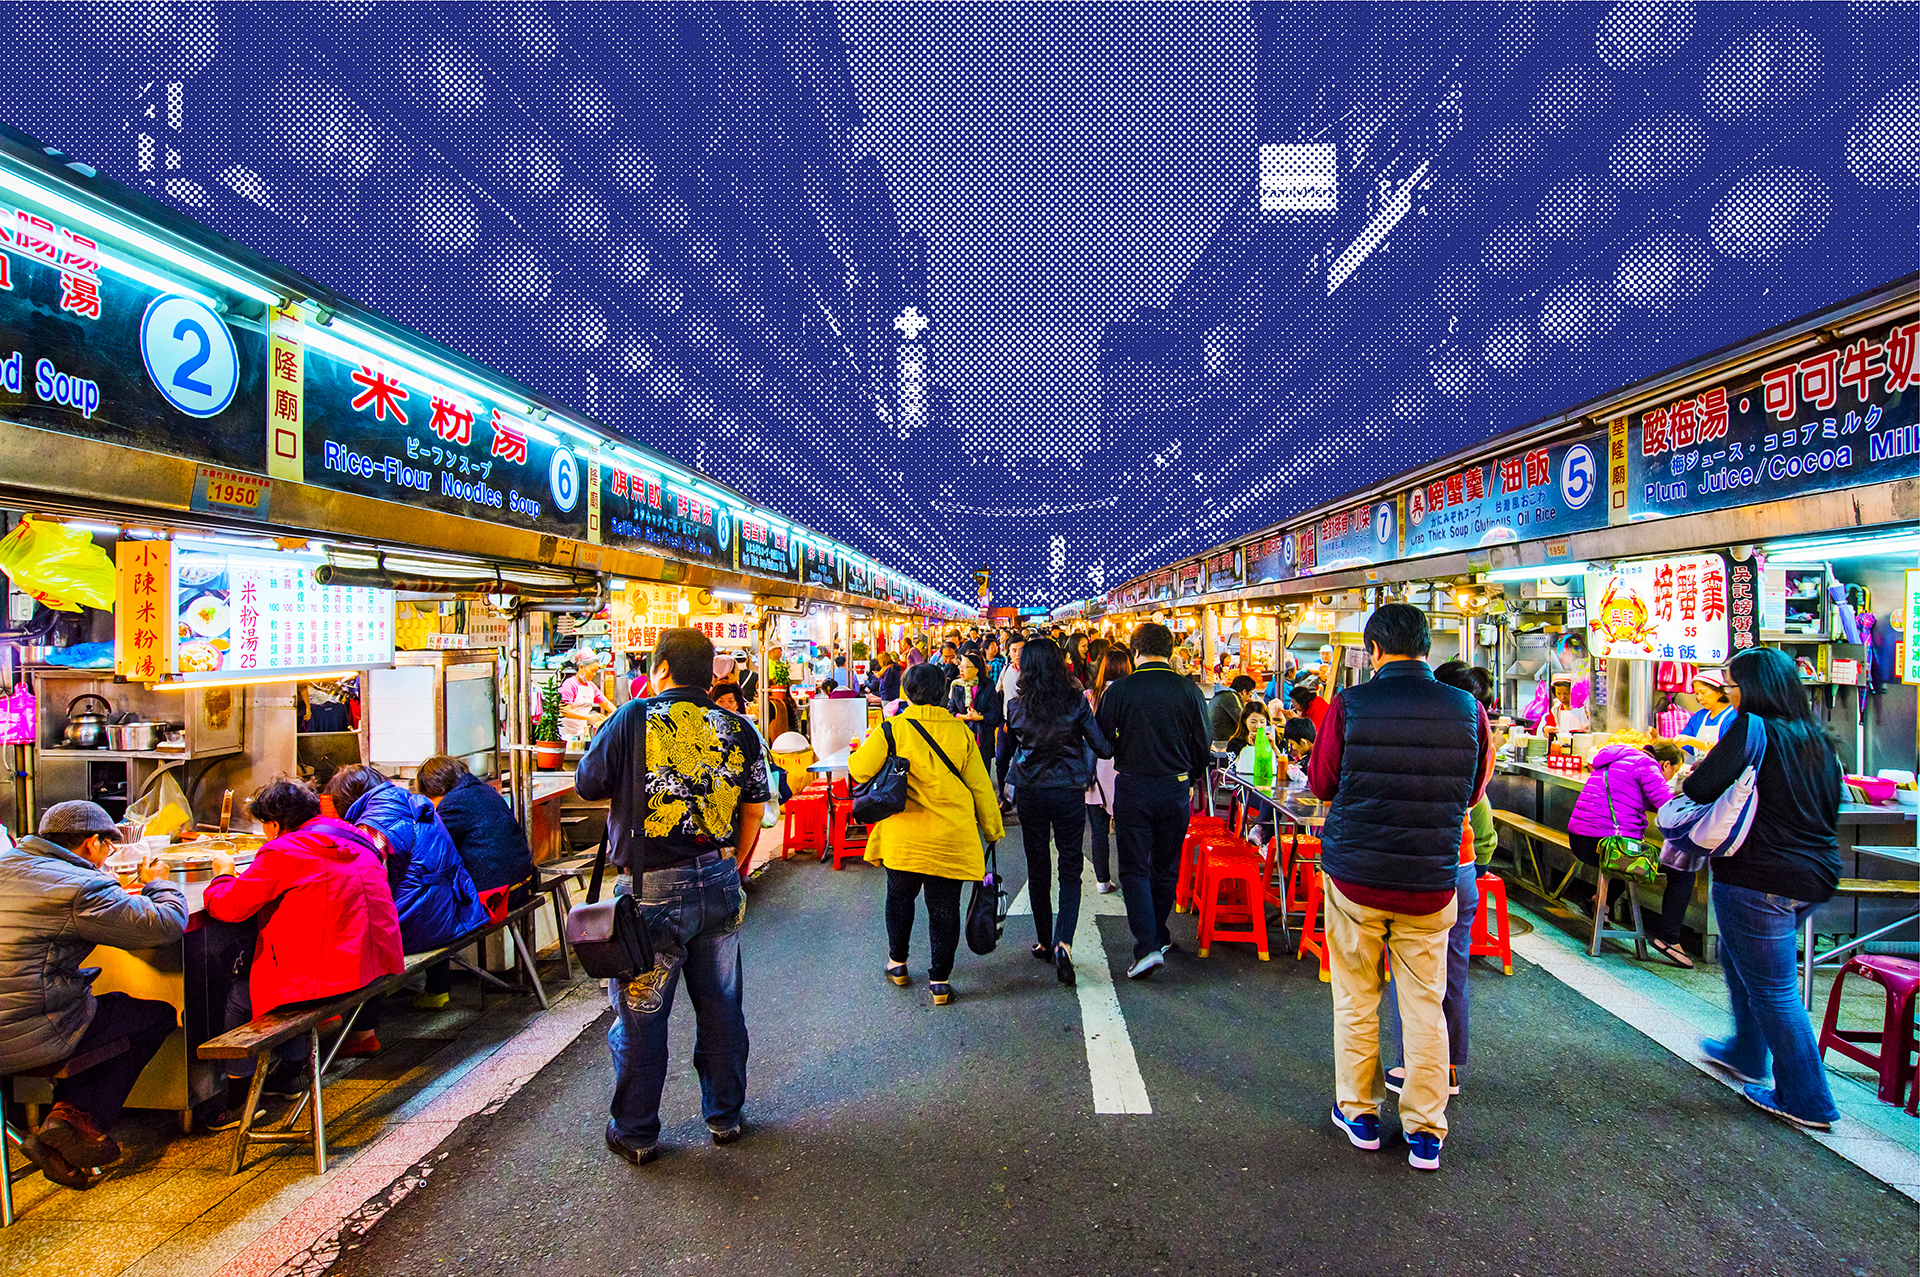 A crowded night market in Keelung, Taiwan, lined with brightly lit food stalls